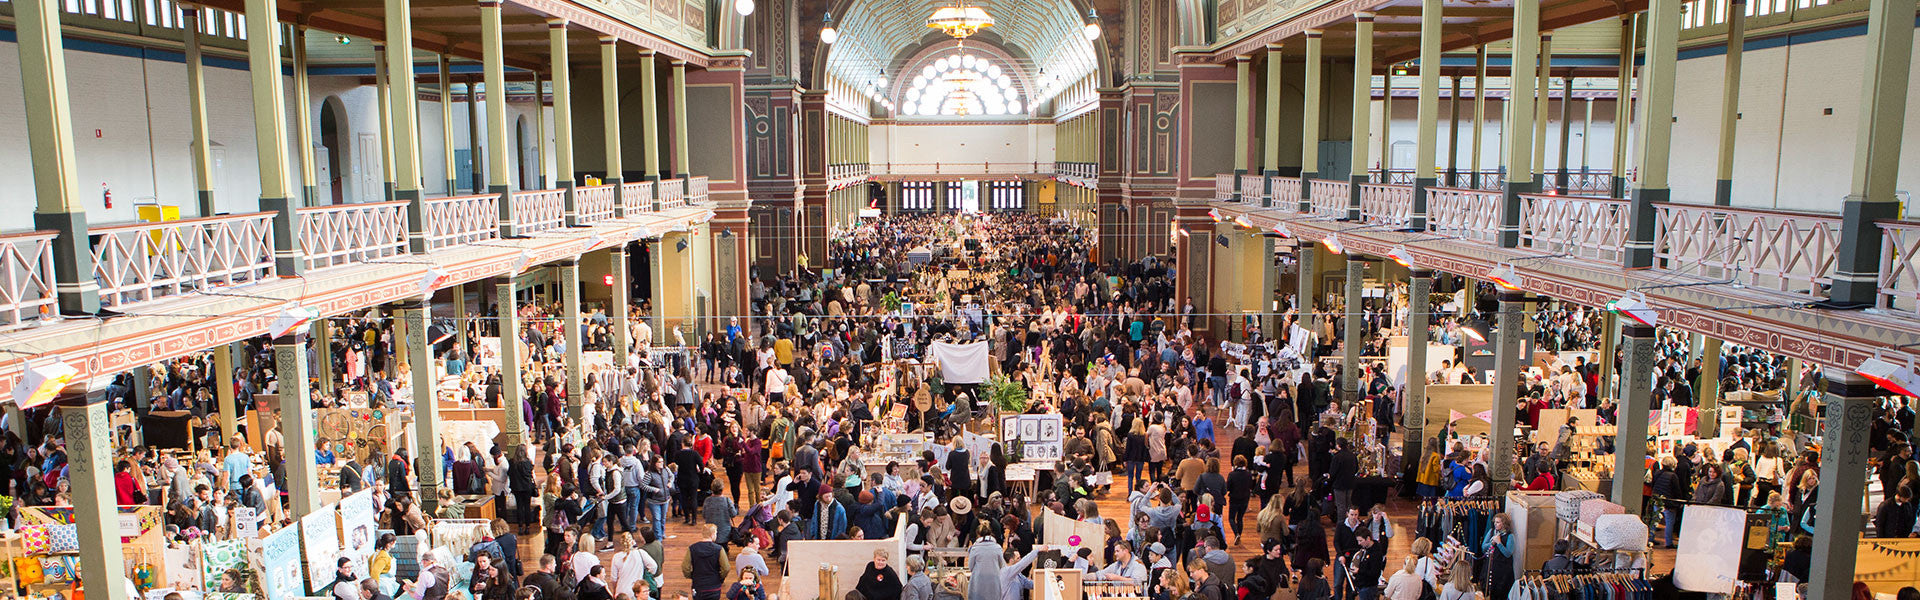 Finders Keepers Market Melbourne Royal Exhibition Building